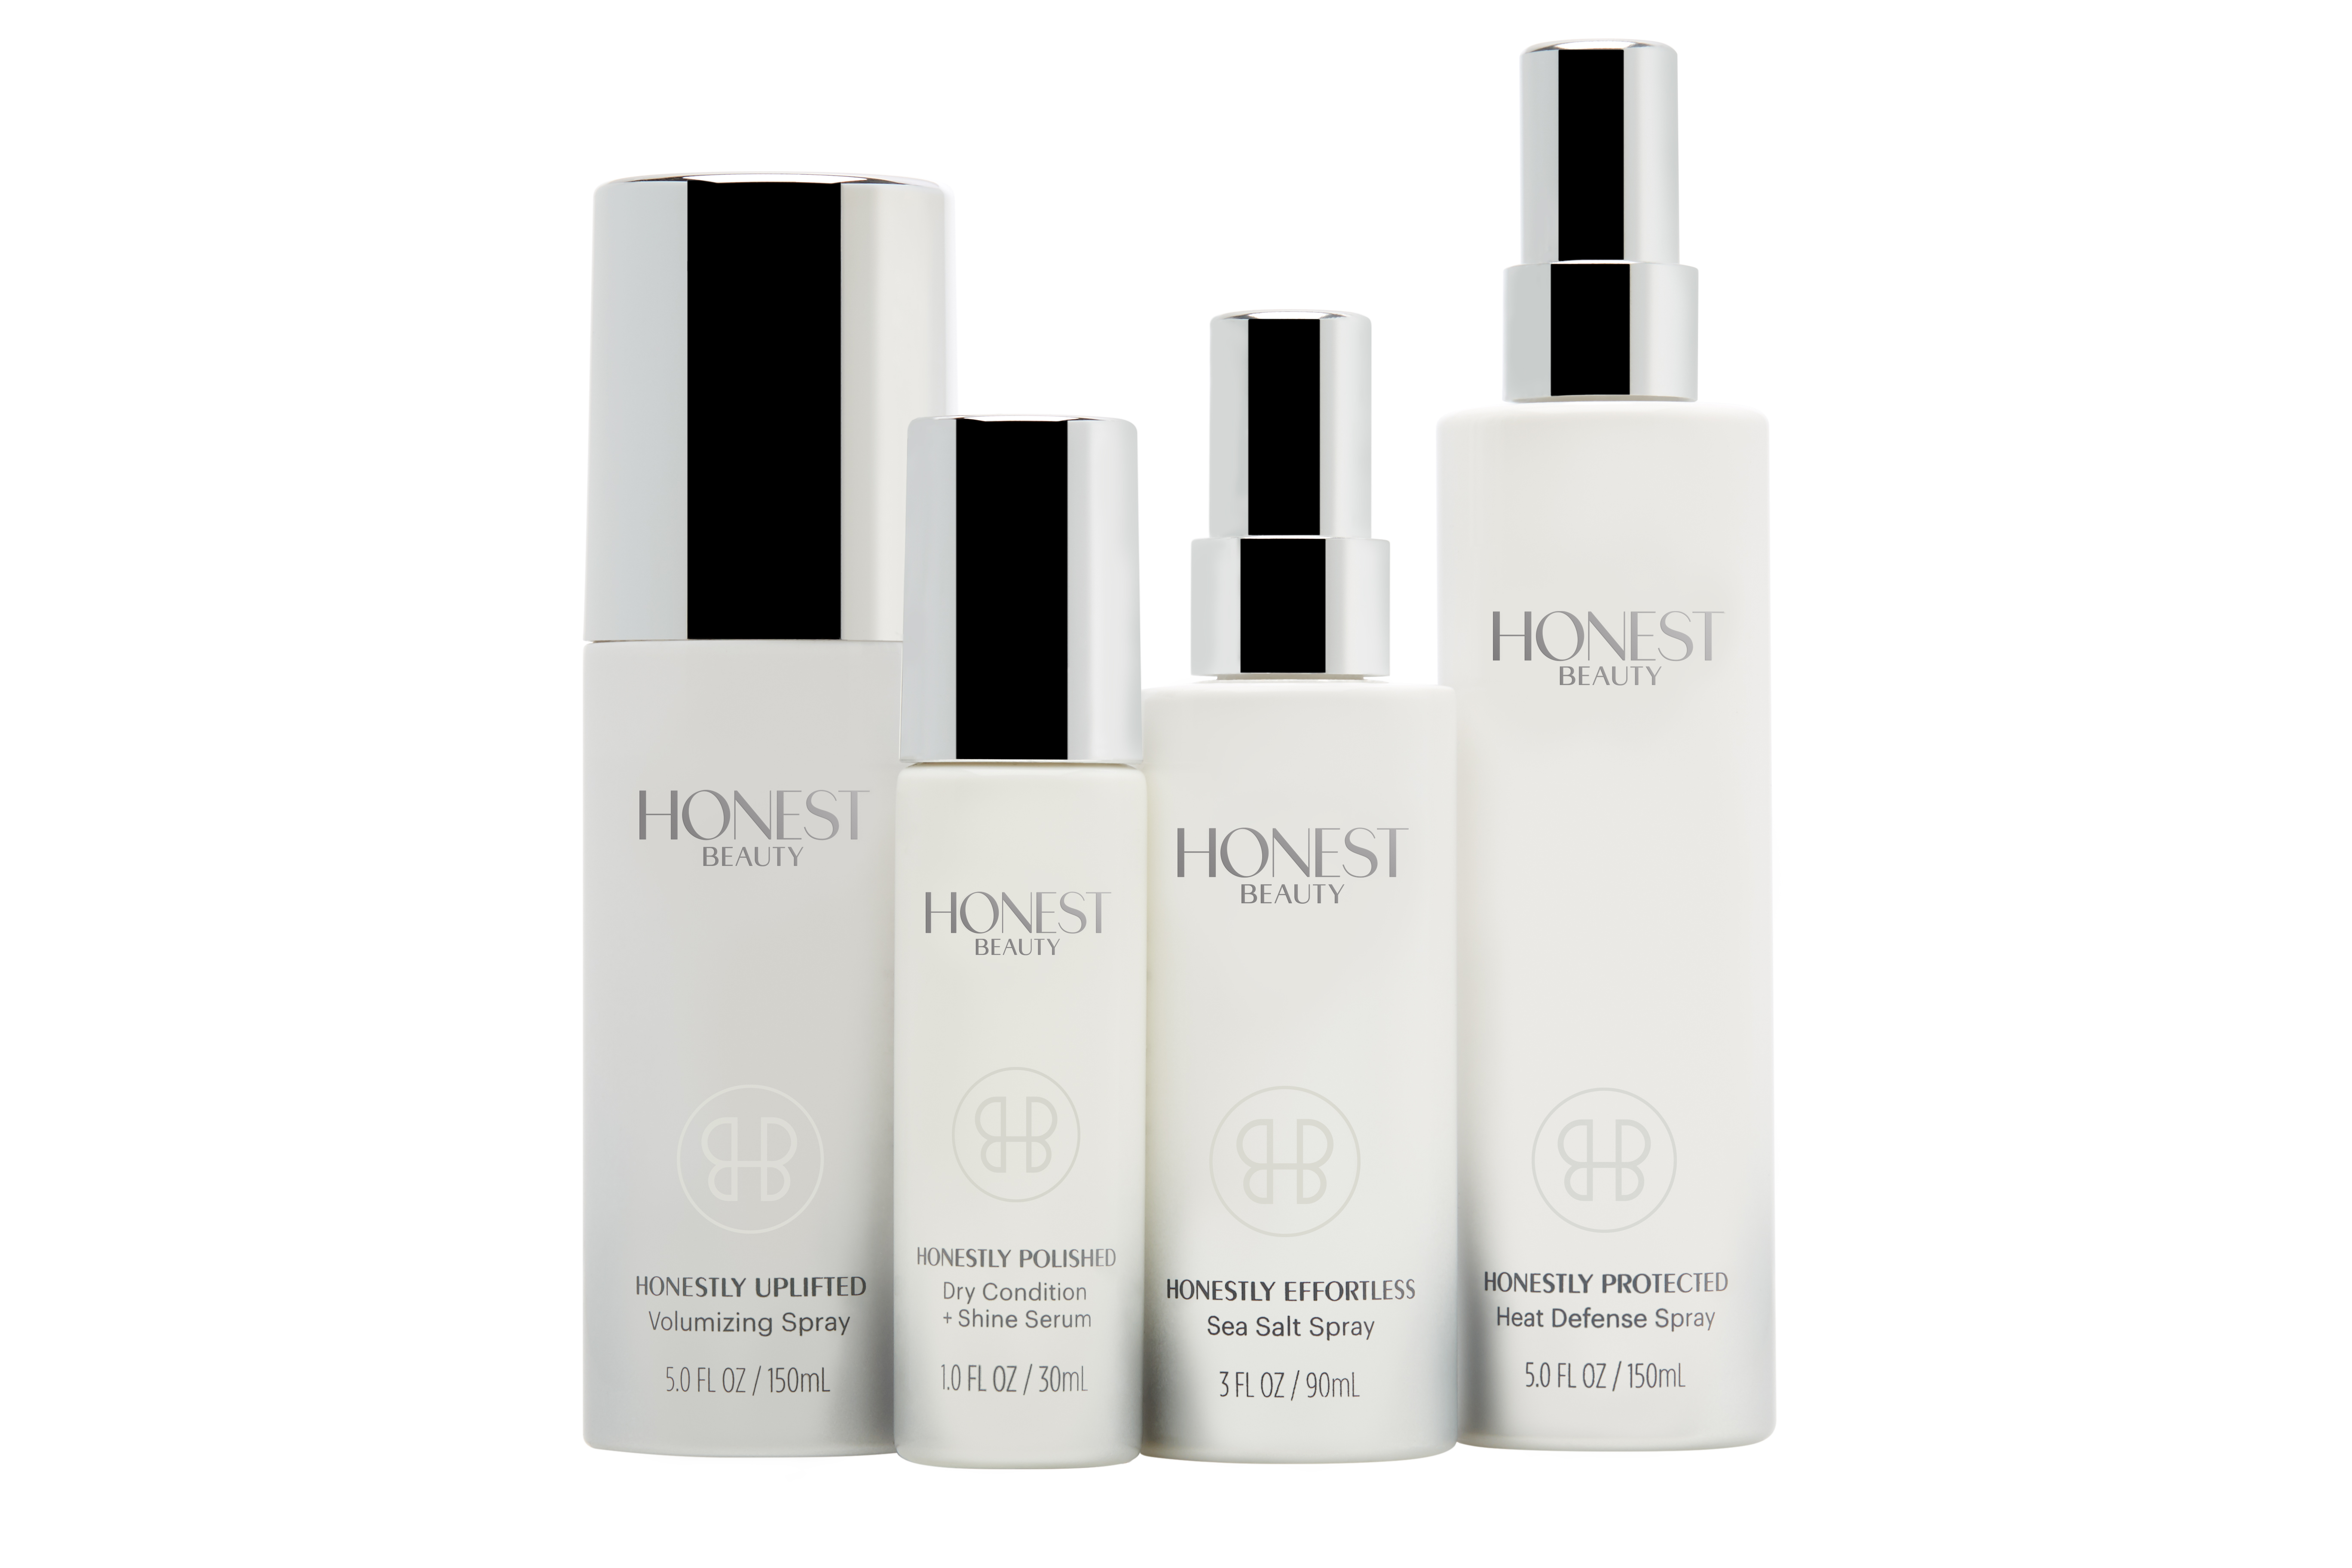 The Honest Co. is expanding the startup's beauty line with new haircare products.